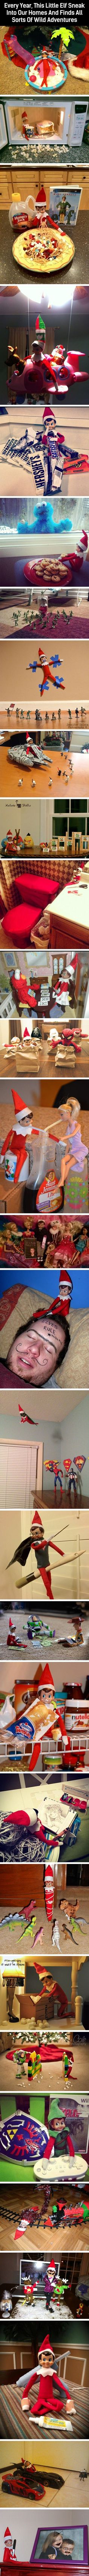 I thought the whole elf on a shelf thing was strange but I can see how this would be awesome through the eyes of a child!